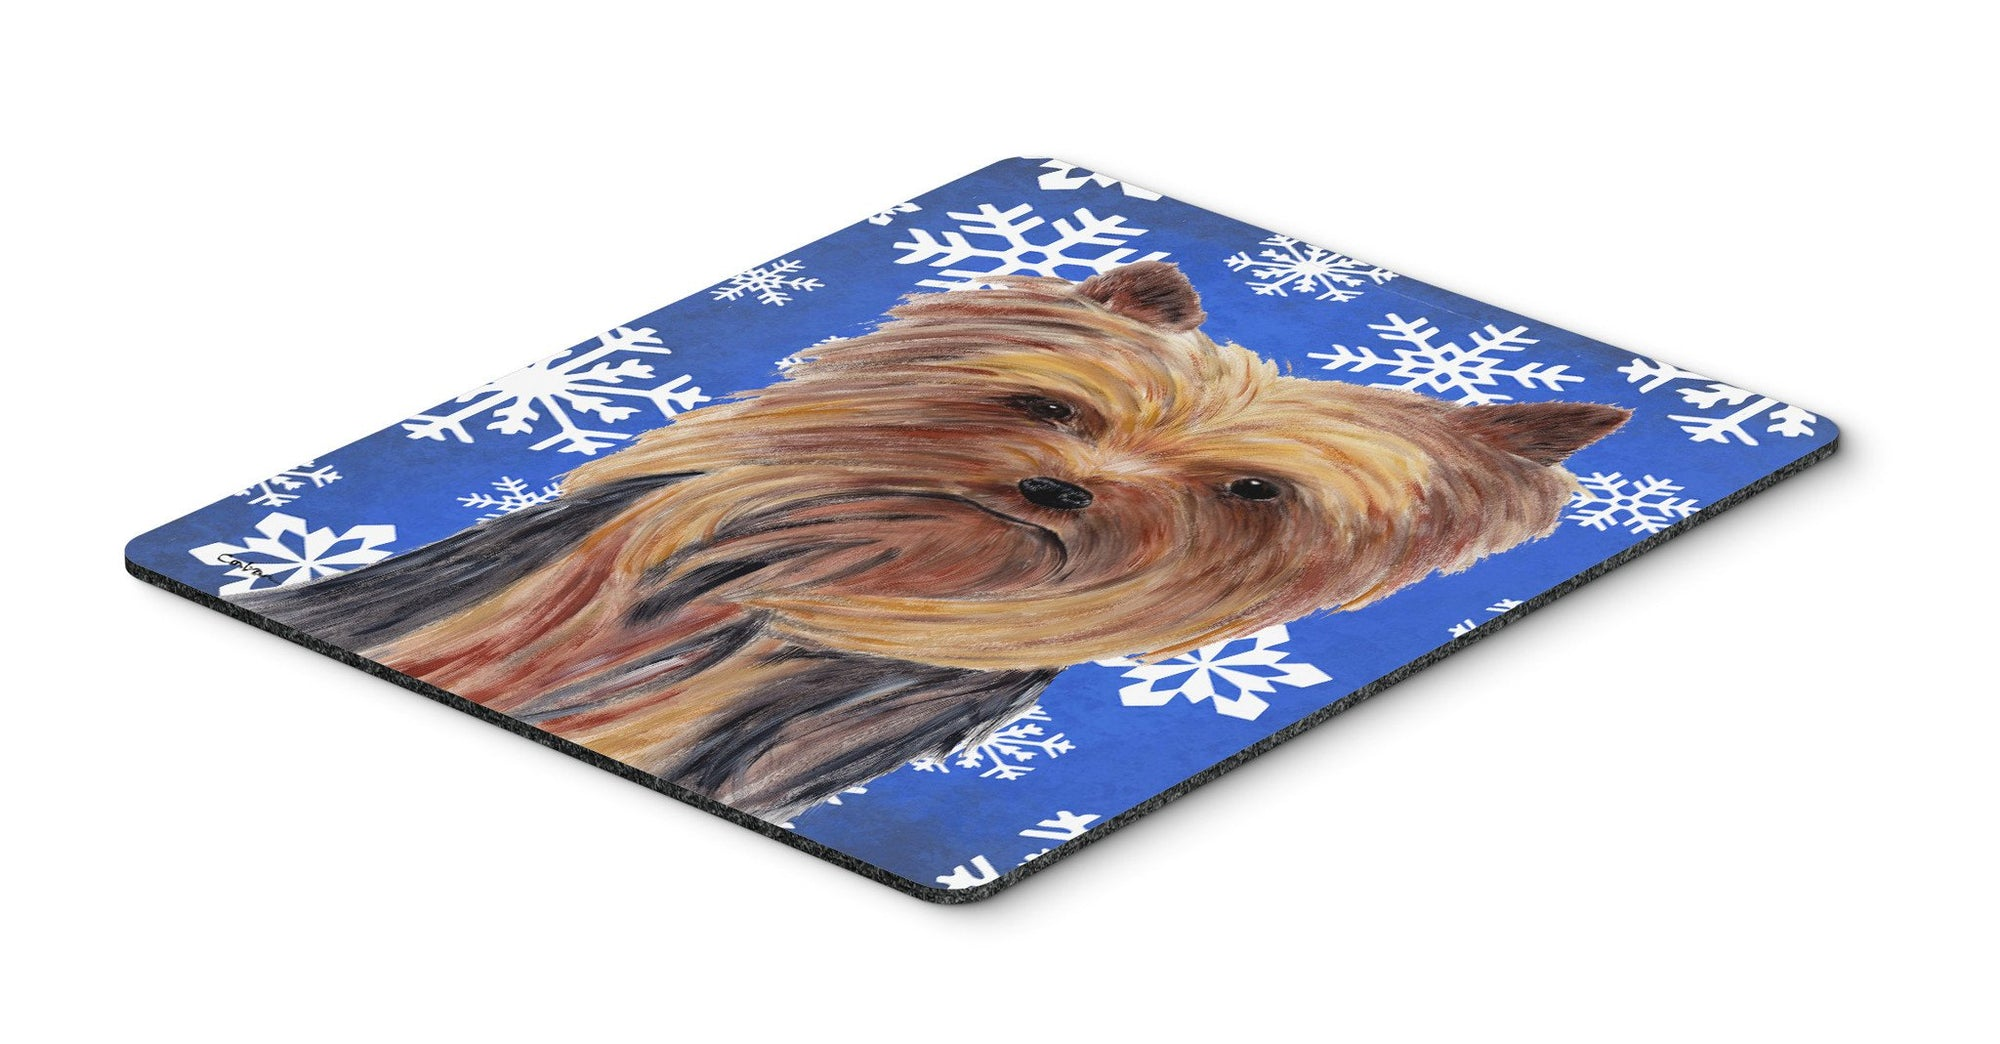 Buy this Yorkie Winter Snowflakes Holiday Mouse Pad, Hot Pad or Trivet